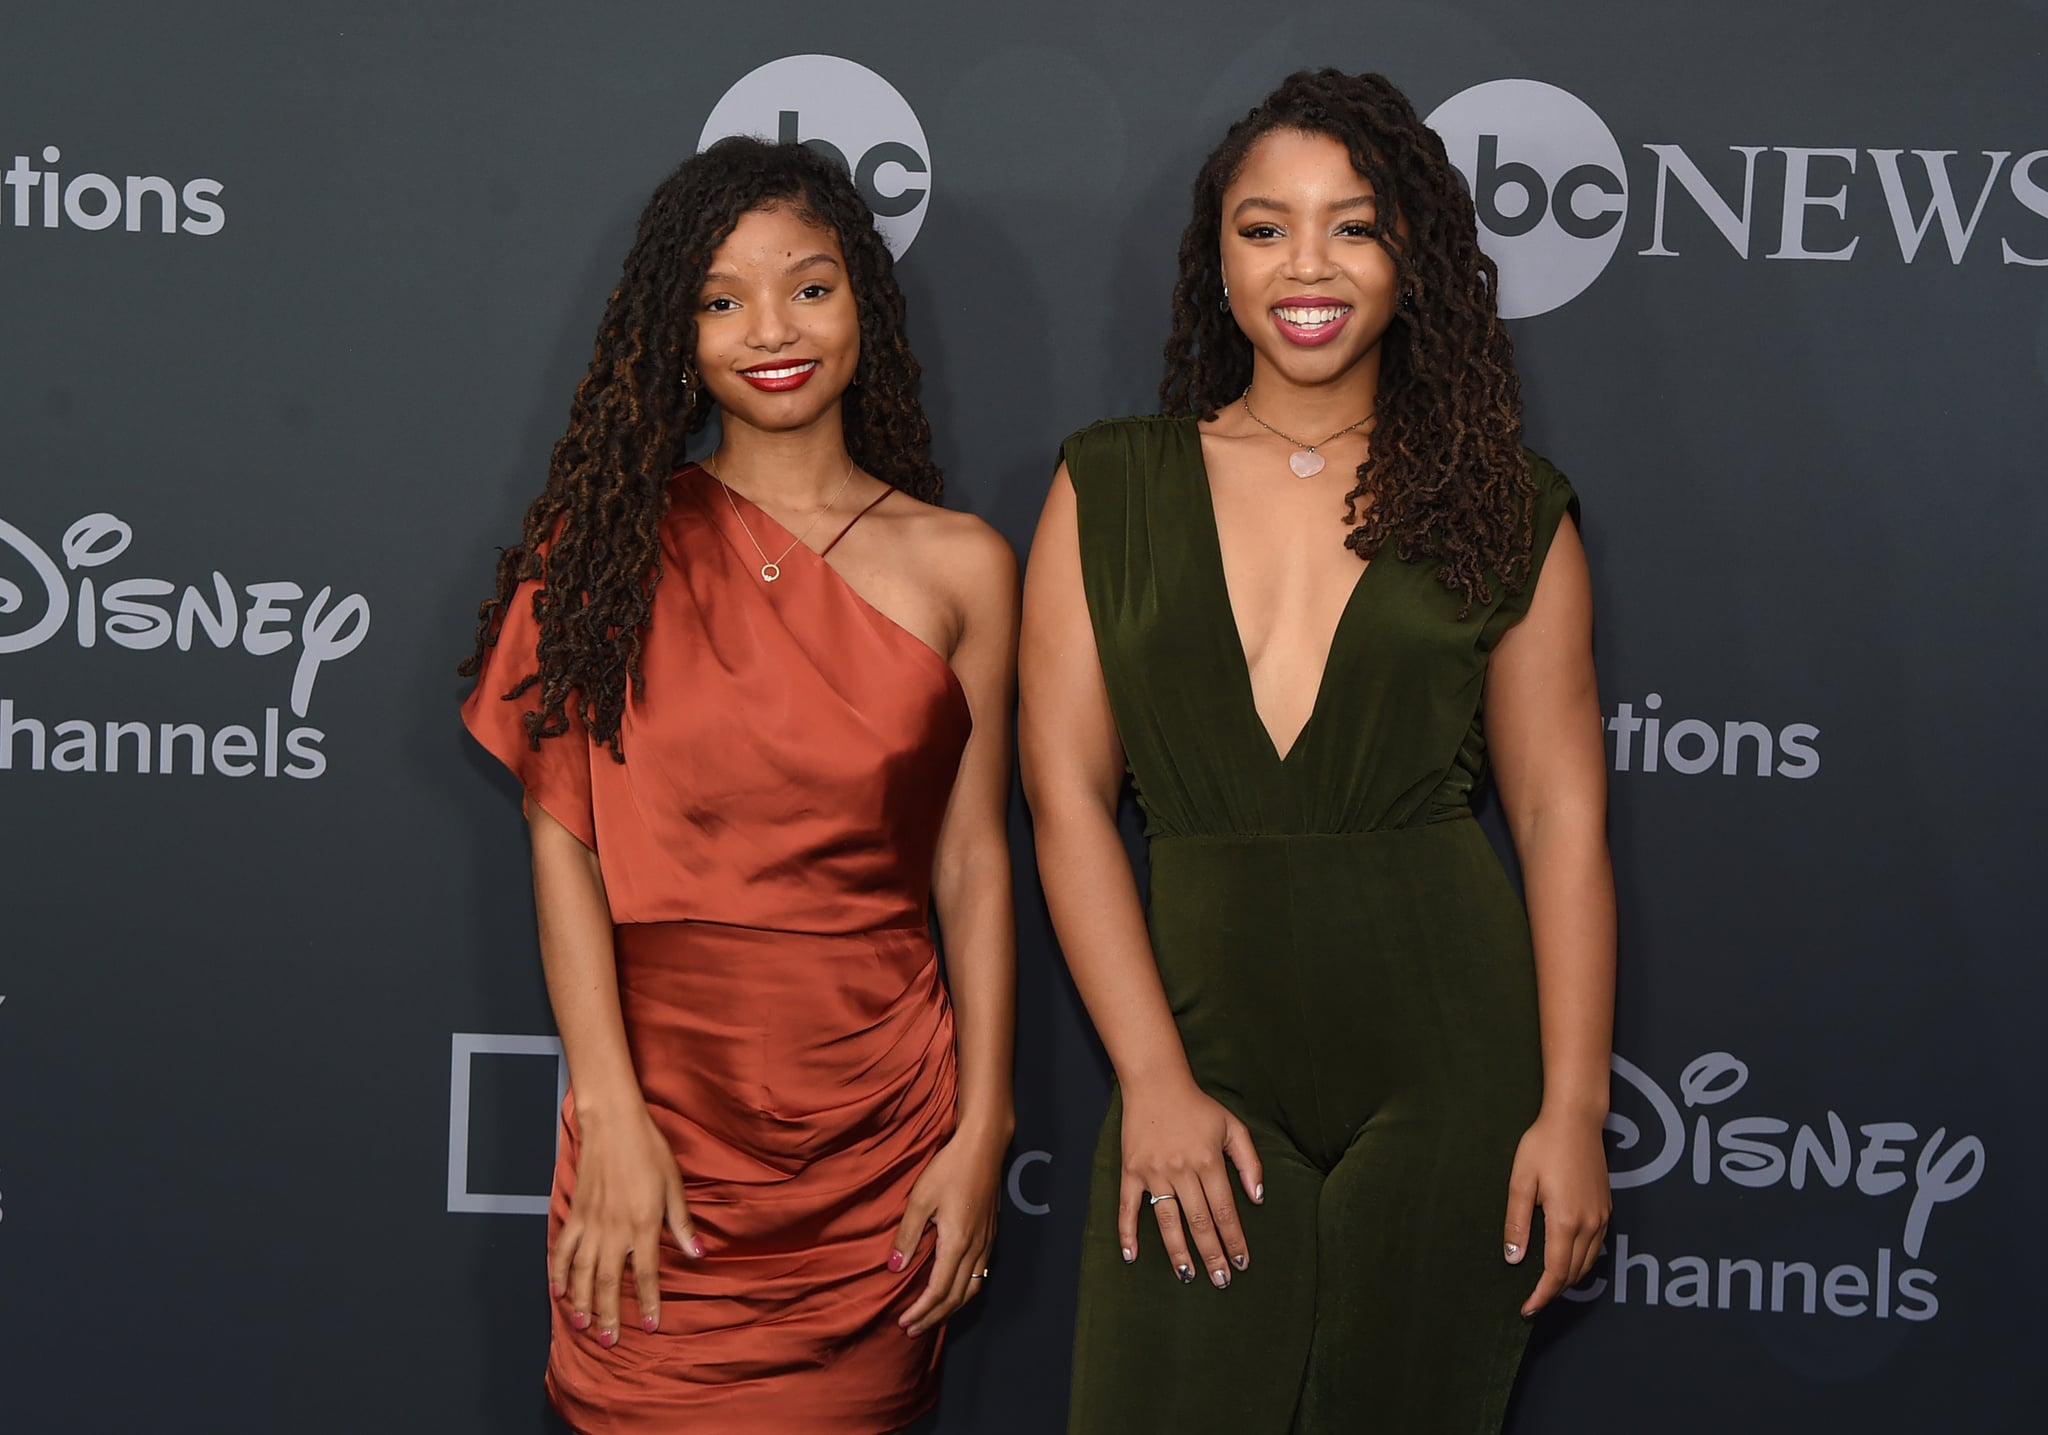 NEW YORK, NEW YORK - MAY 14: Halle Bailey and Chloe Bailey attend the ABC Walt Disney Television Upfront on May 14, 2019 in New York City. (Photo by Jamie McCarthy/Getty Images)